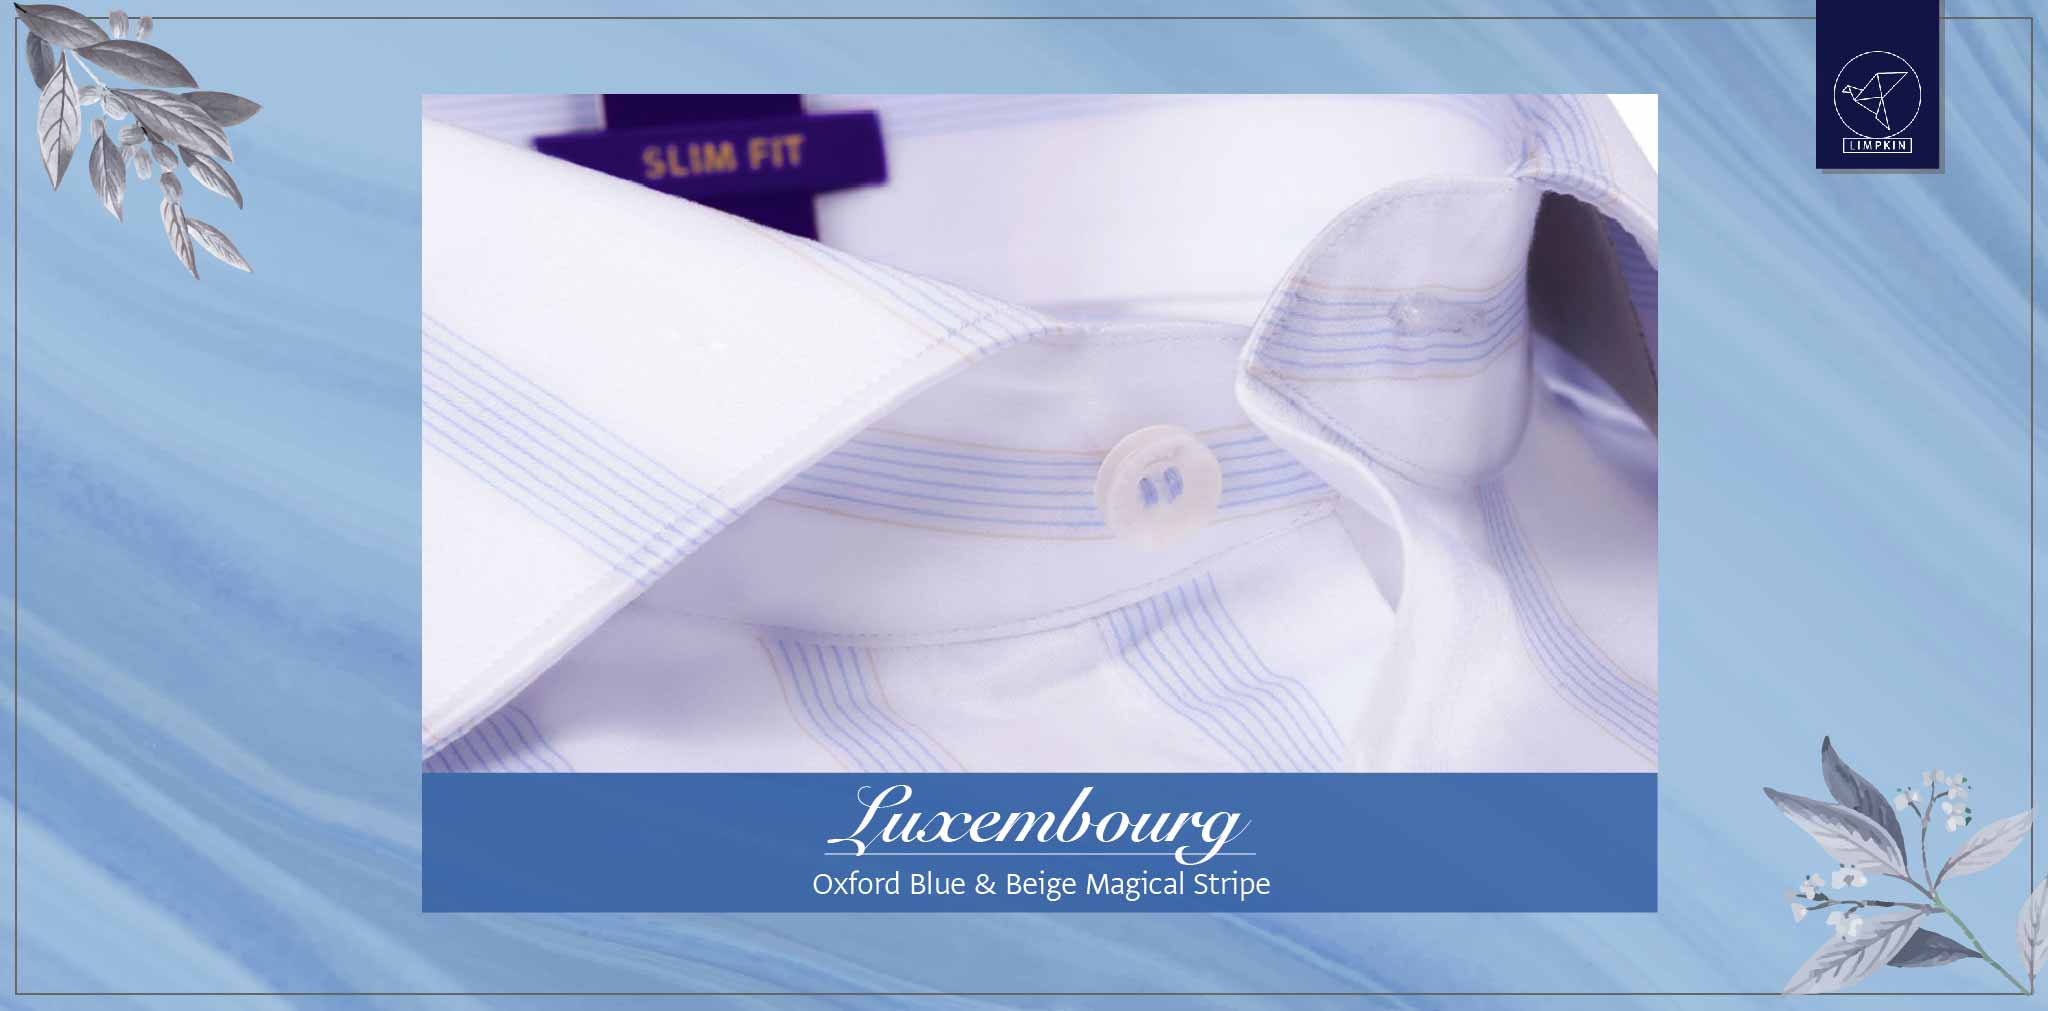 Luxembourg- Oxford Blue & Beige Magical Stripe- 2 Ply Pure Egyptian Giza Cotton- Delivery from 19th April - Banner